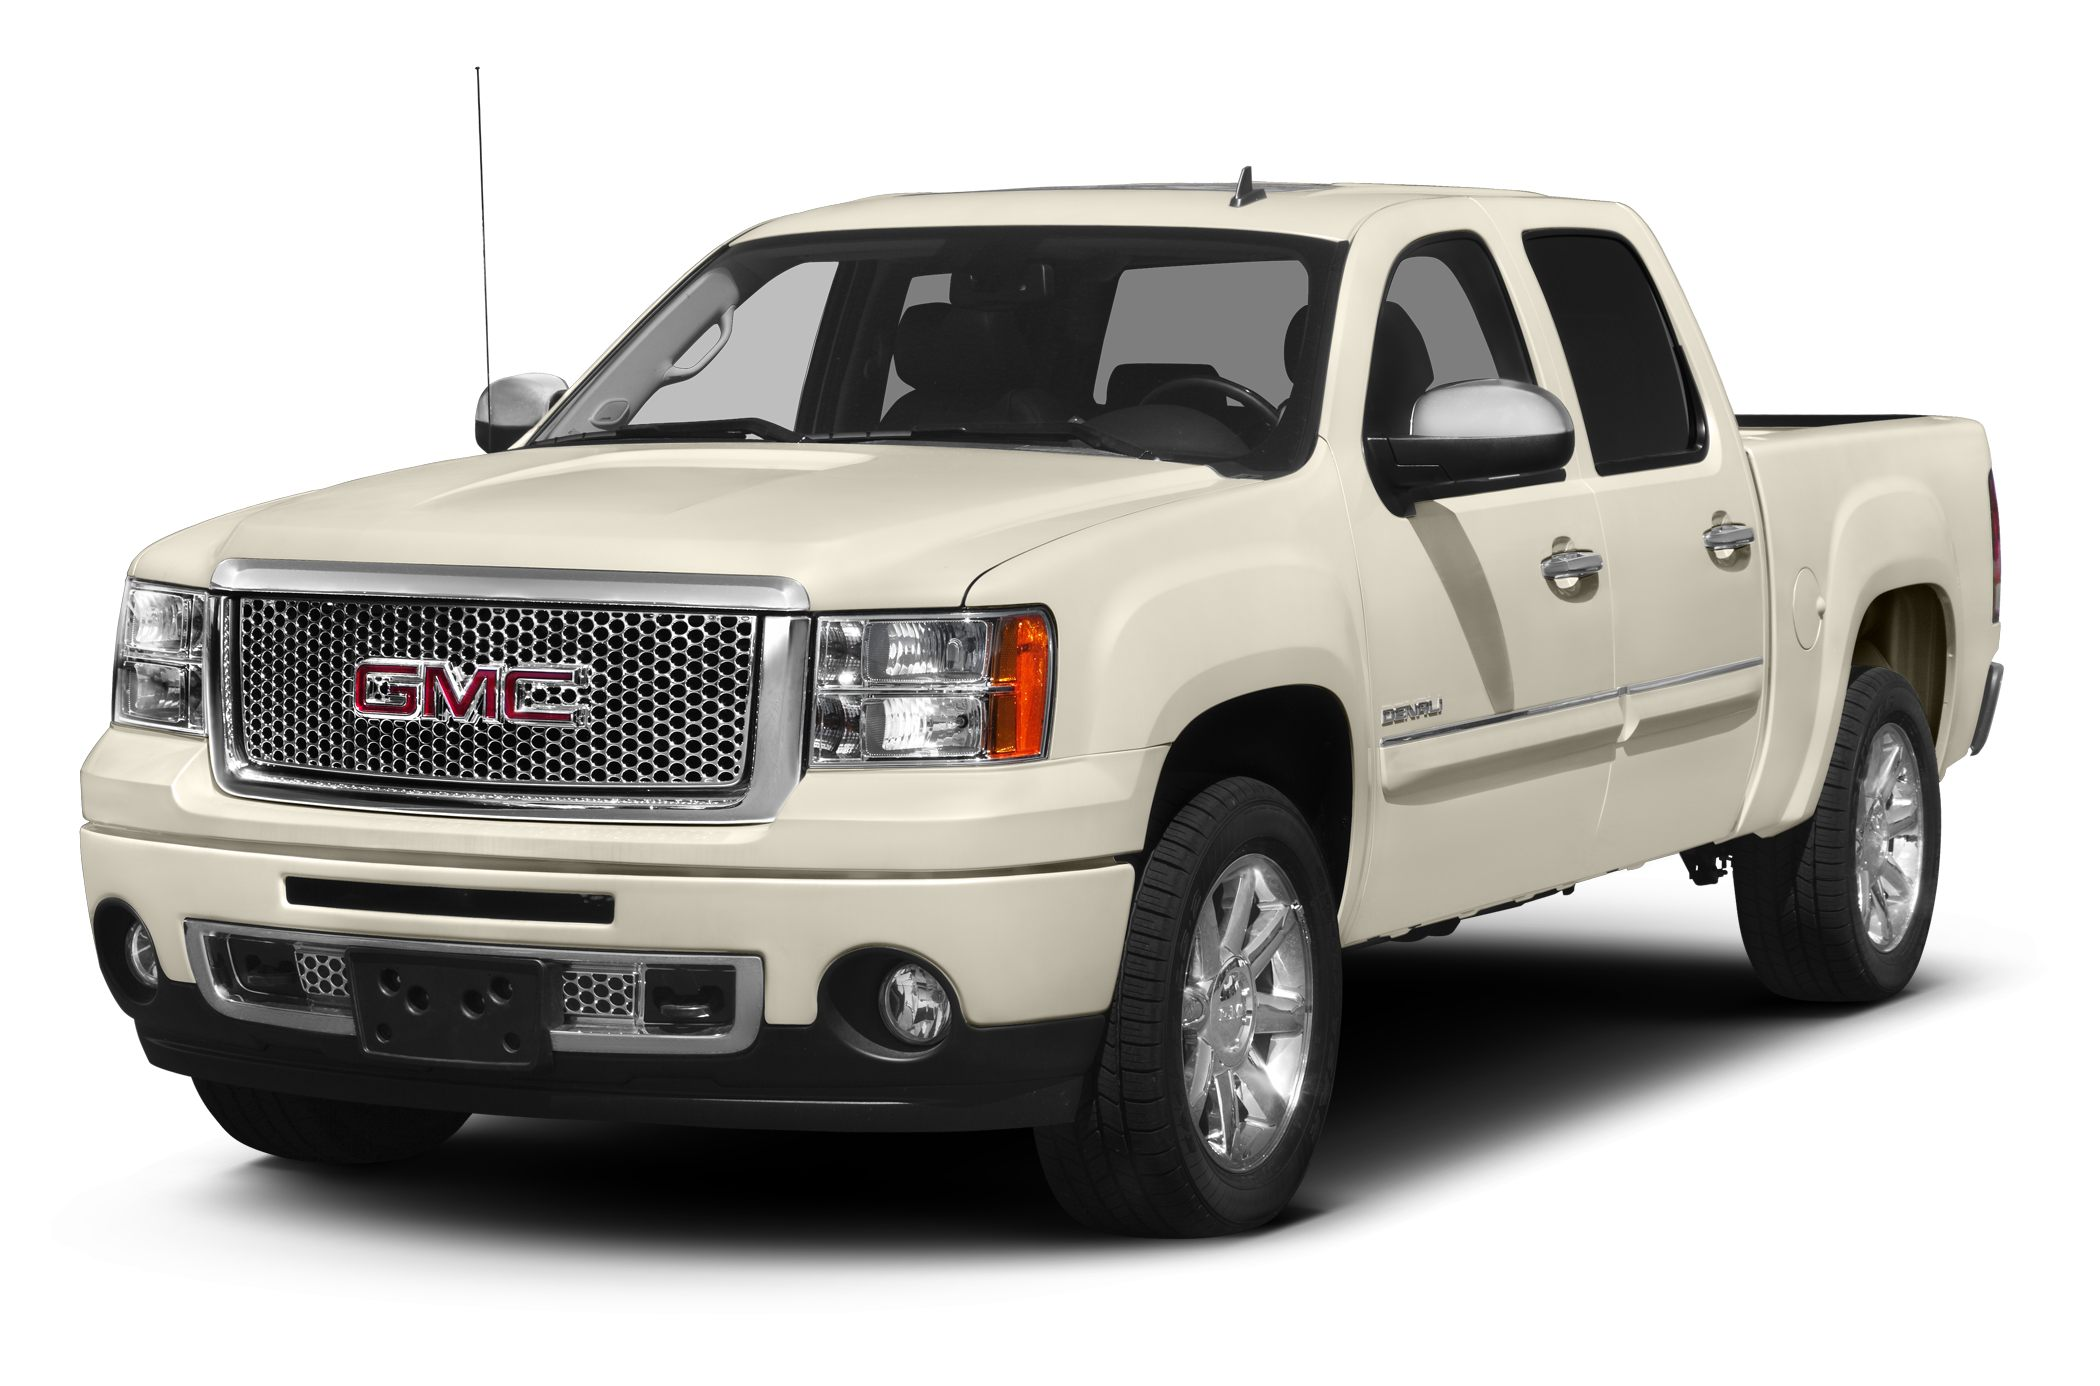 2012 GMC Sierra 1500 Denali Crew Cab Pickup for sale in Clarksville for $37,994 with 50,742 miles.